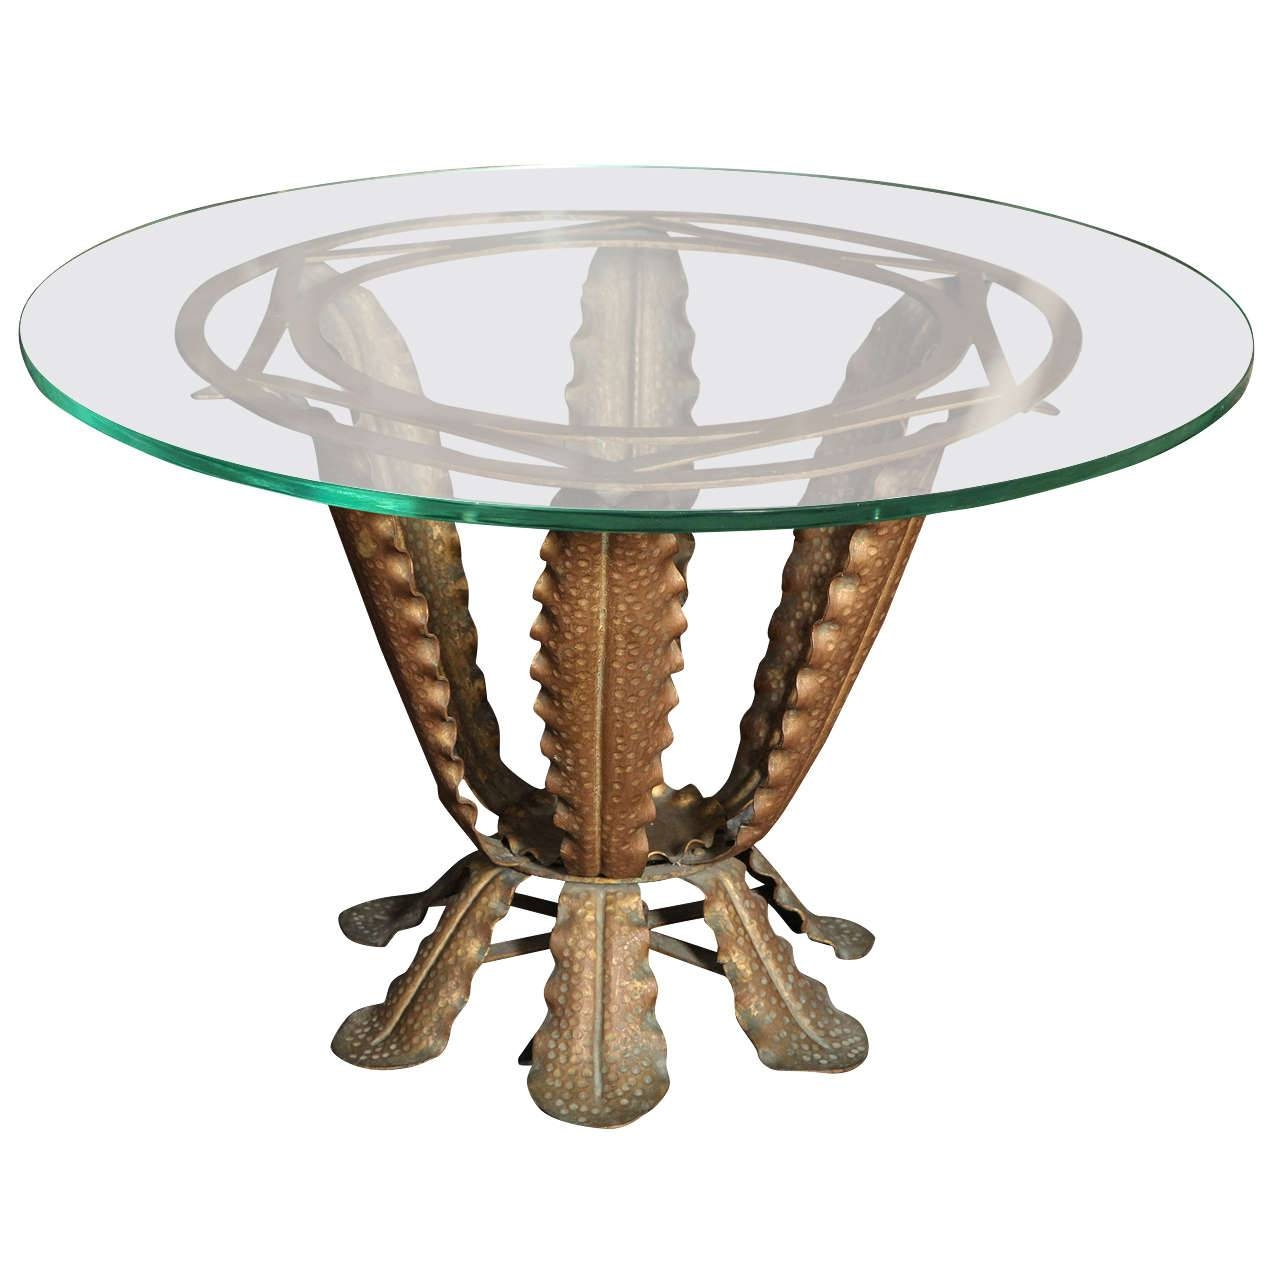 Pier One Round Glass Top Coffee Table With Funky Base Design Idea with regard to Funky Coffee Tables (Image 28 of 30)